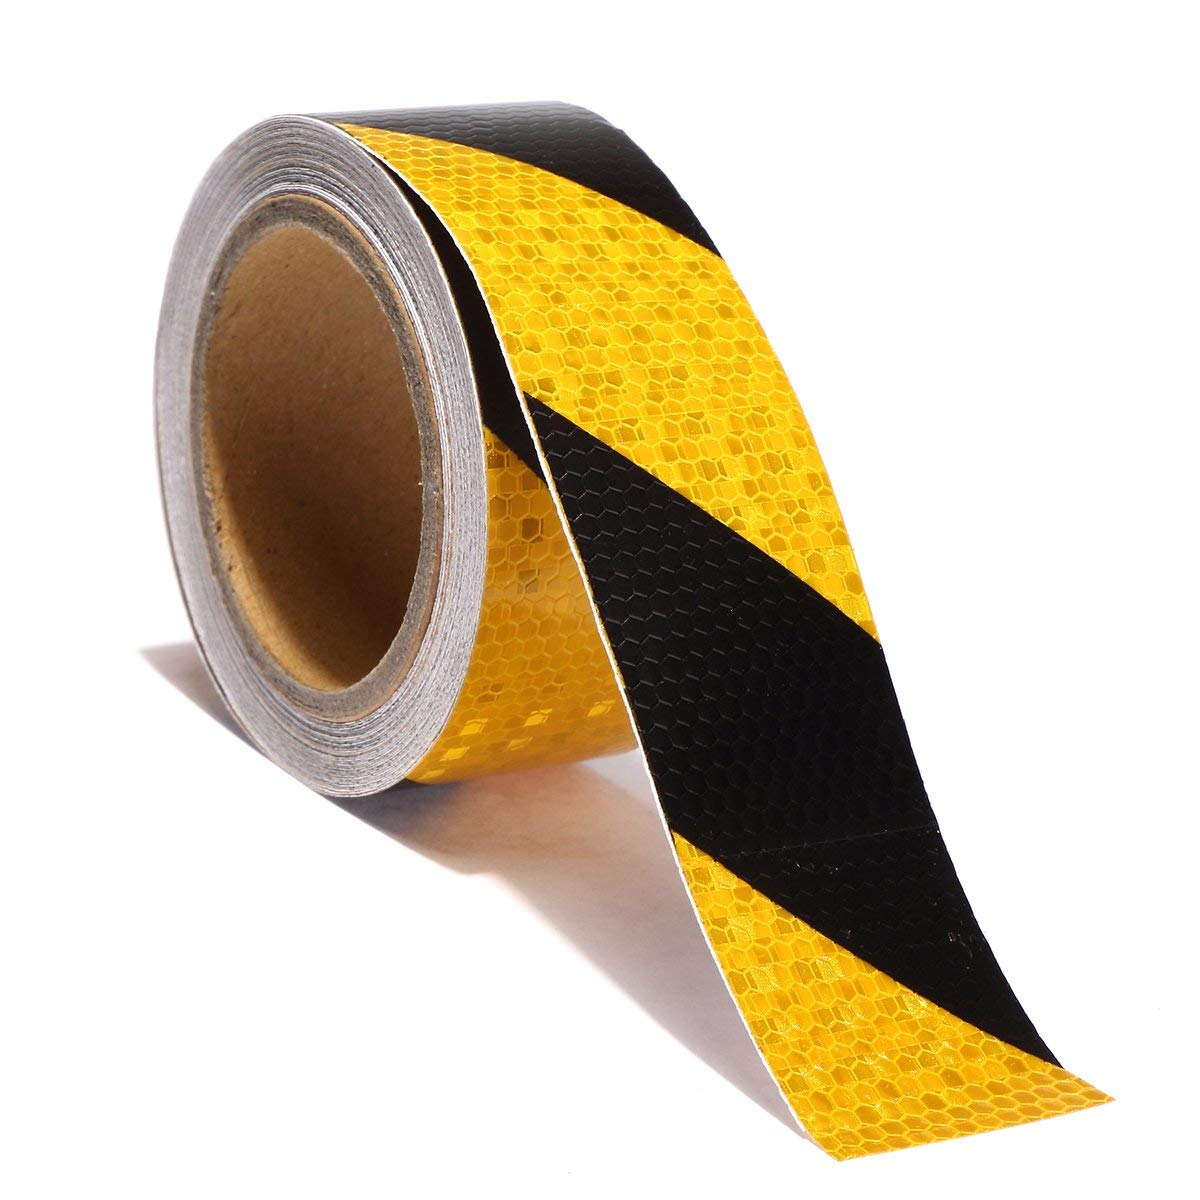 Reemky Reflective Safety Tape 2x 33ft Adhesive Tape for Stair Steps Road Transport Facilities Vehicles Ships Fairways Stage Channel (5CM x 10M)